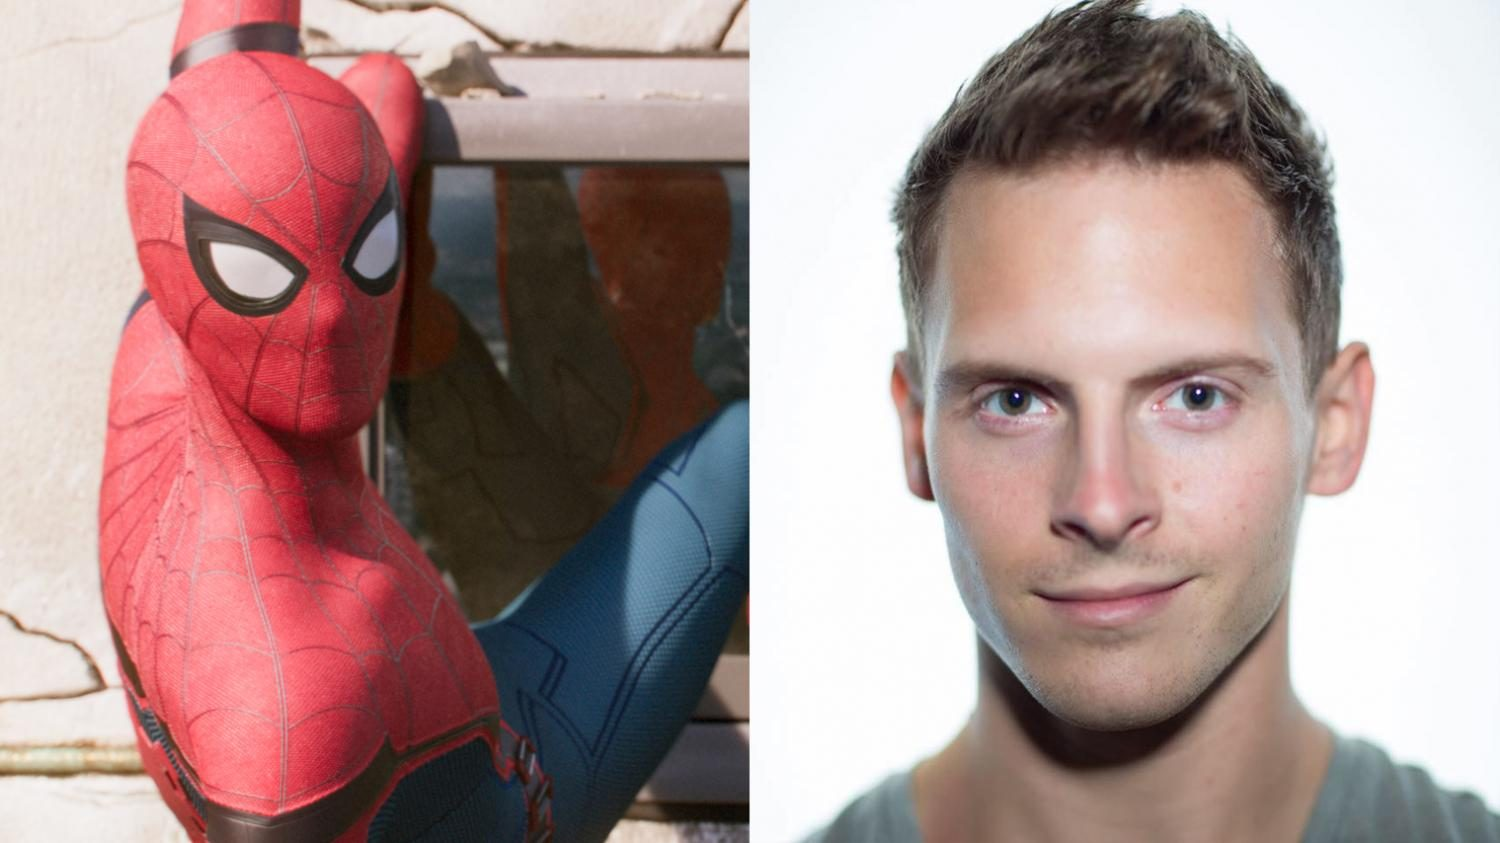 Chris+Silcox%2C+an+Illinois+alum+and+ex-NCAA+gymnast%2C+landed+a+role+in+Spider-Man%3A+Homecoming+as+a+stunt+double.